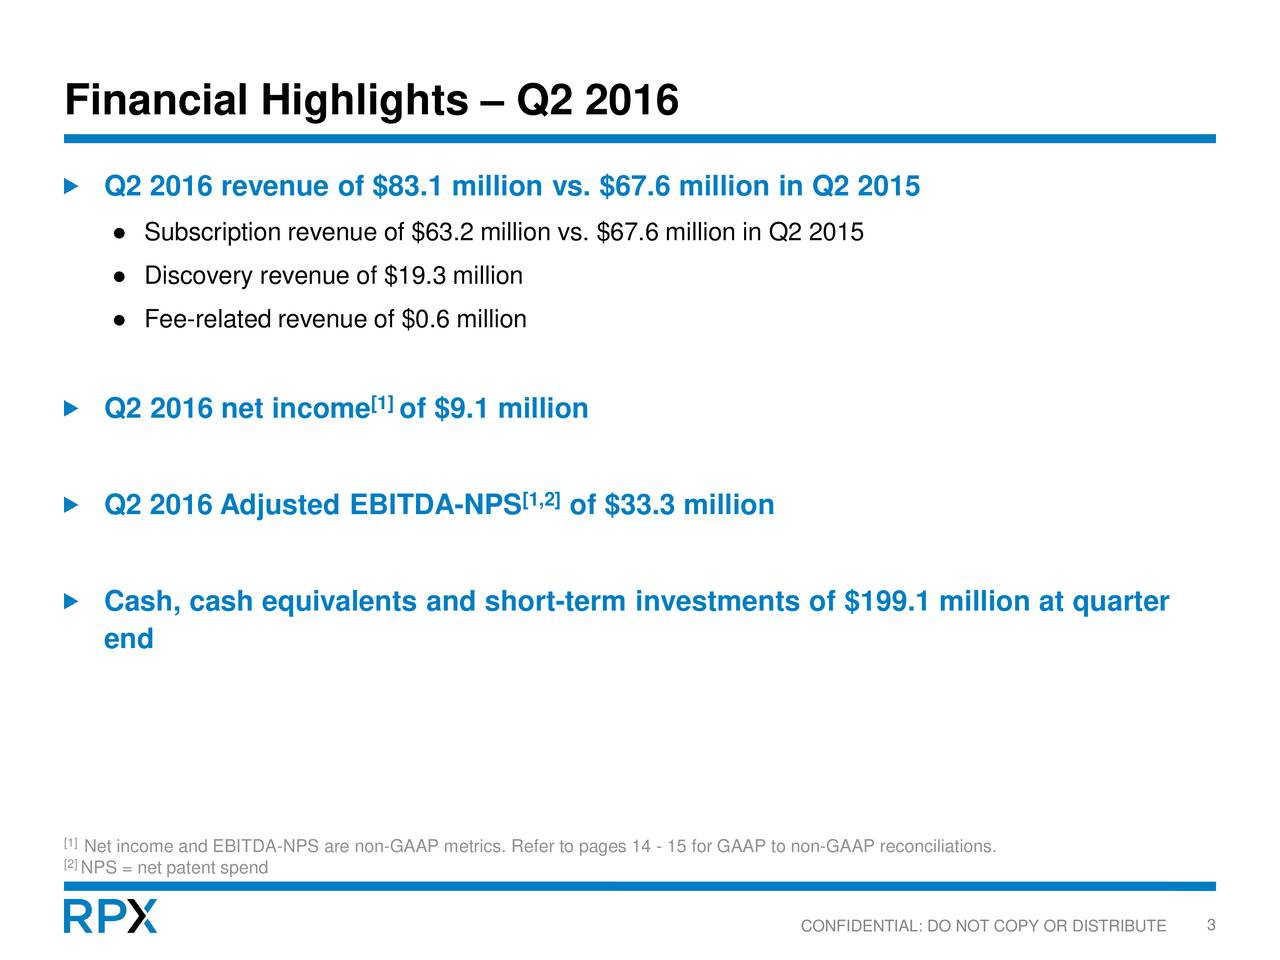 Q2 2016 revenue of $83.1 million vs. $67.6 million in Q2 2015 Subscription revenue of $63.2 million vs. $67.6 million in Q2 2015 Discovery revenue of $19.3 million Fee-related revenue of $0.6 million Q2 2016 net income [1of $9.1 million Q2 2016 Adjusted EBITDA-NPS [1,2of $33.3 million Cash, cash equivalents and short-term investments of $199.1 million at quarter end [1Net income and EBITDA-NPS are non-GAAP metrics. Refer to pages 14 - 15 for GAAP to non-GAAP reconciliations. [2NPS = net patent spend CONFIDENTIAL: DO NOT COPY OR DISTRIBUTE